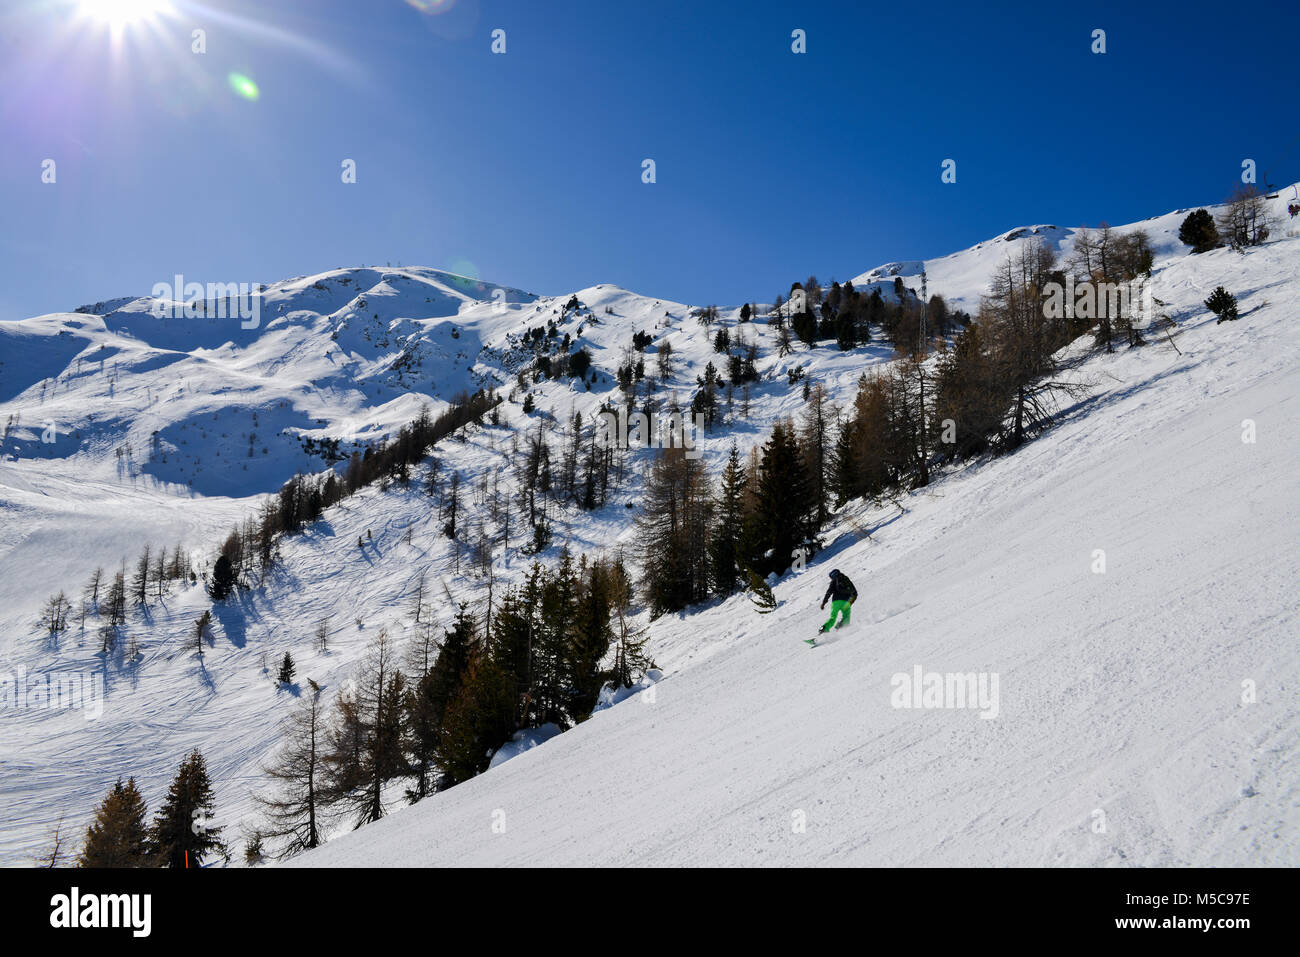 Pila, Aosta, Italy - Feb 19, 2018: Steep gradient piste in Italian Alps with lone expert snowboarder heading down, - Stock Image